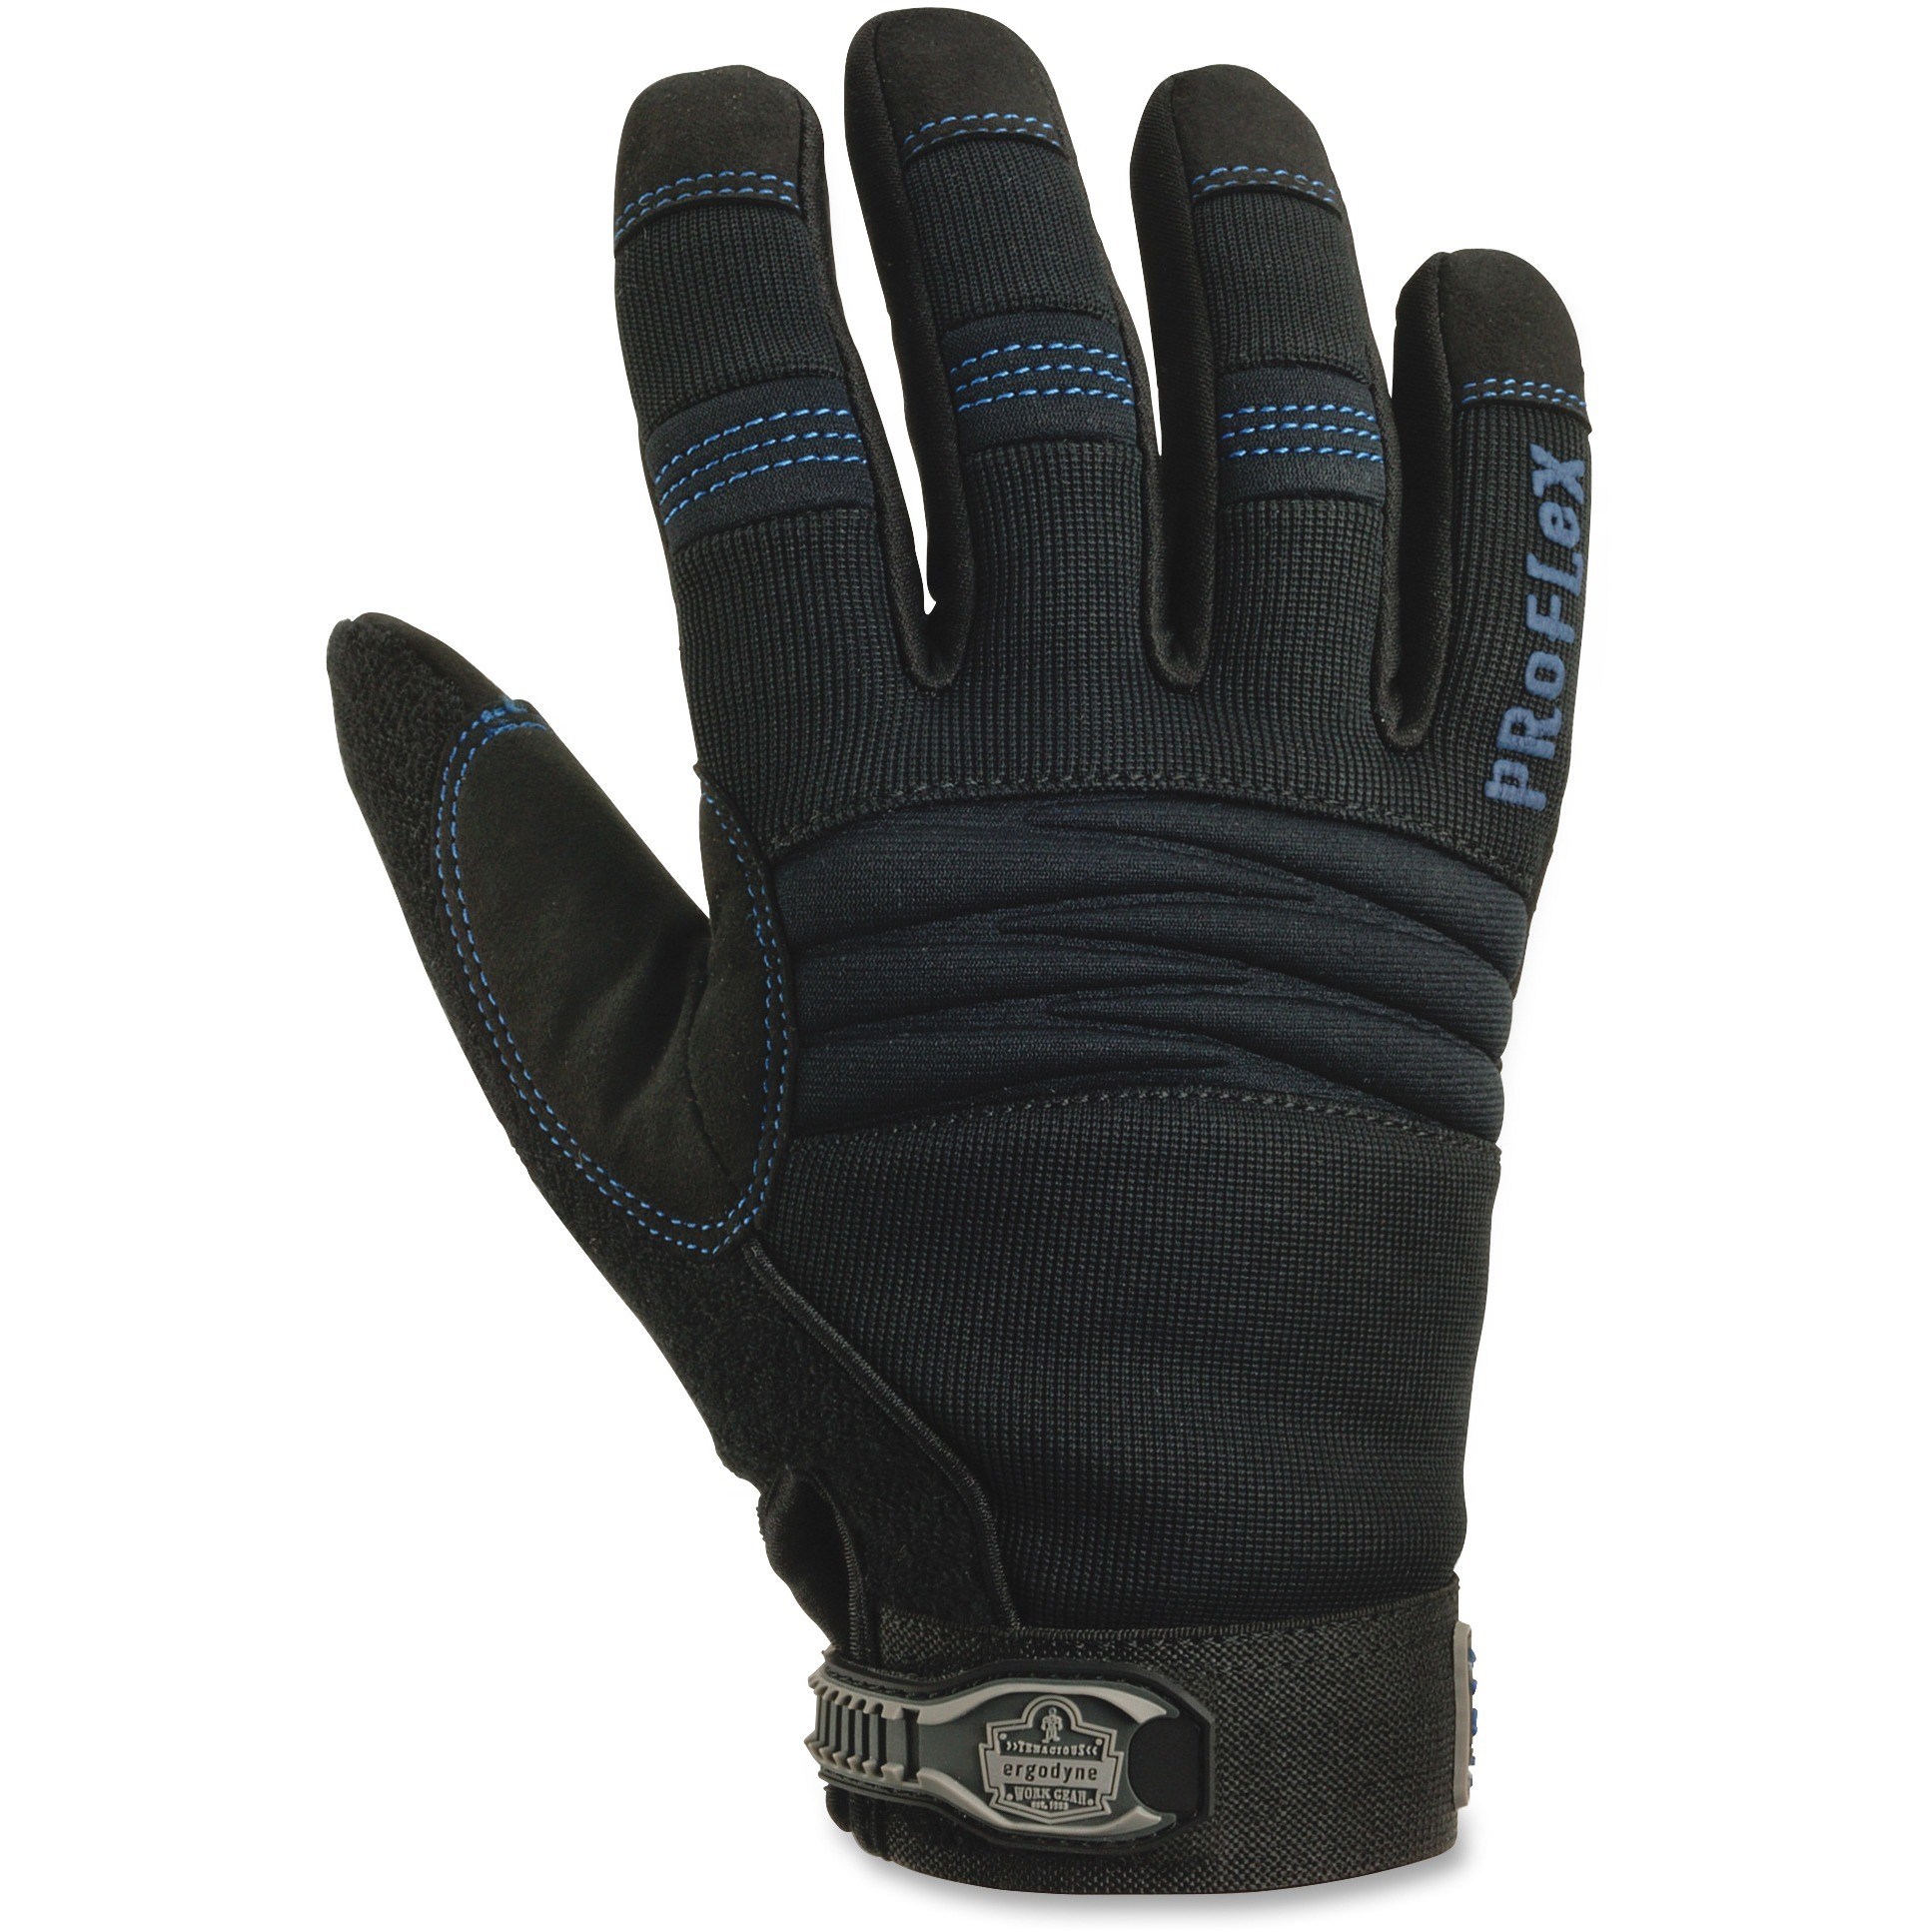 ProFlex Thermal Utility Gloves, Black, 2 / Pair (Quantity)